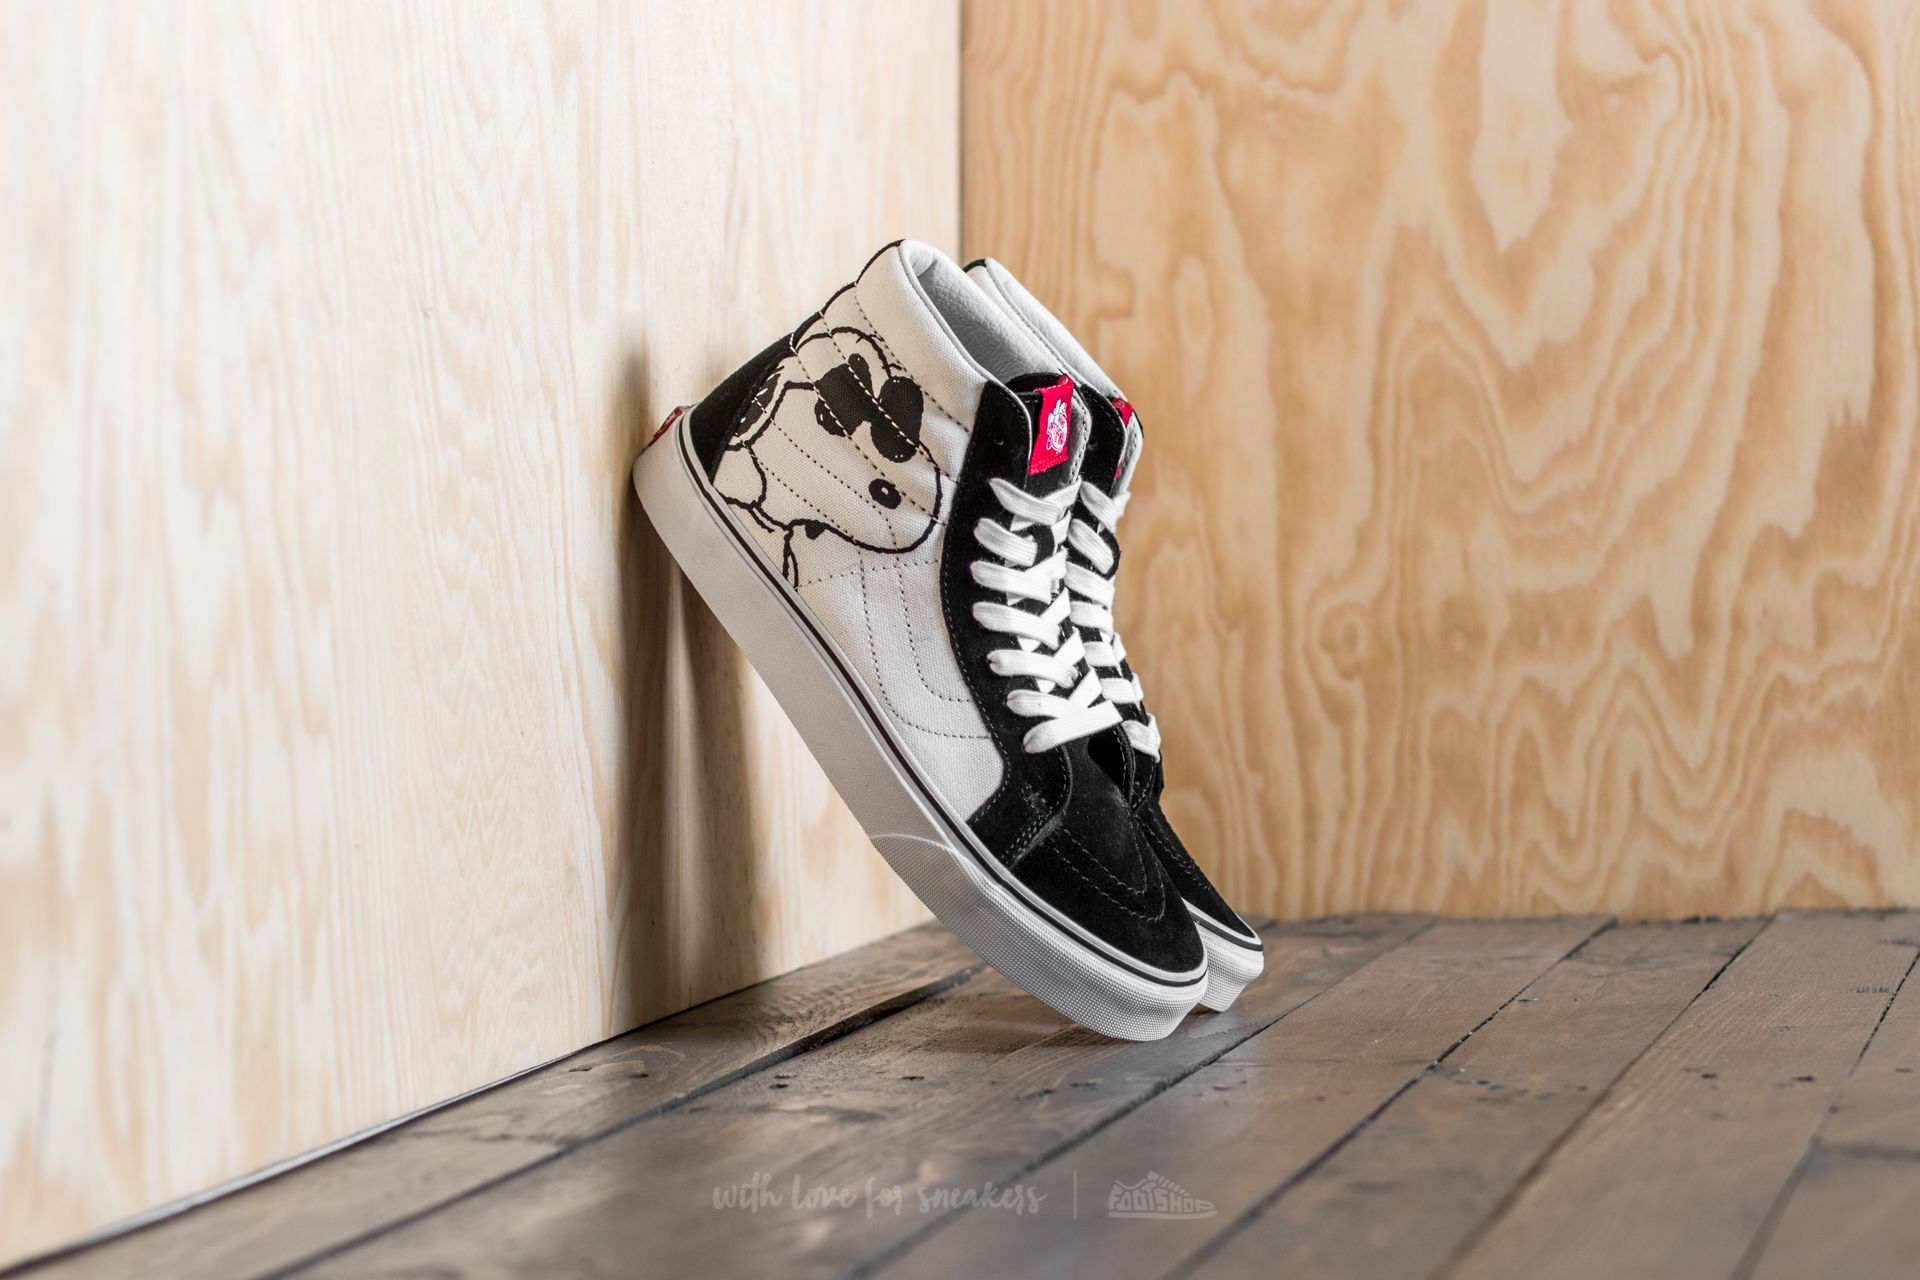 795202a6b9 Vans x Peanuts Sk8-Hi Reissue Joe Cool  Black